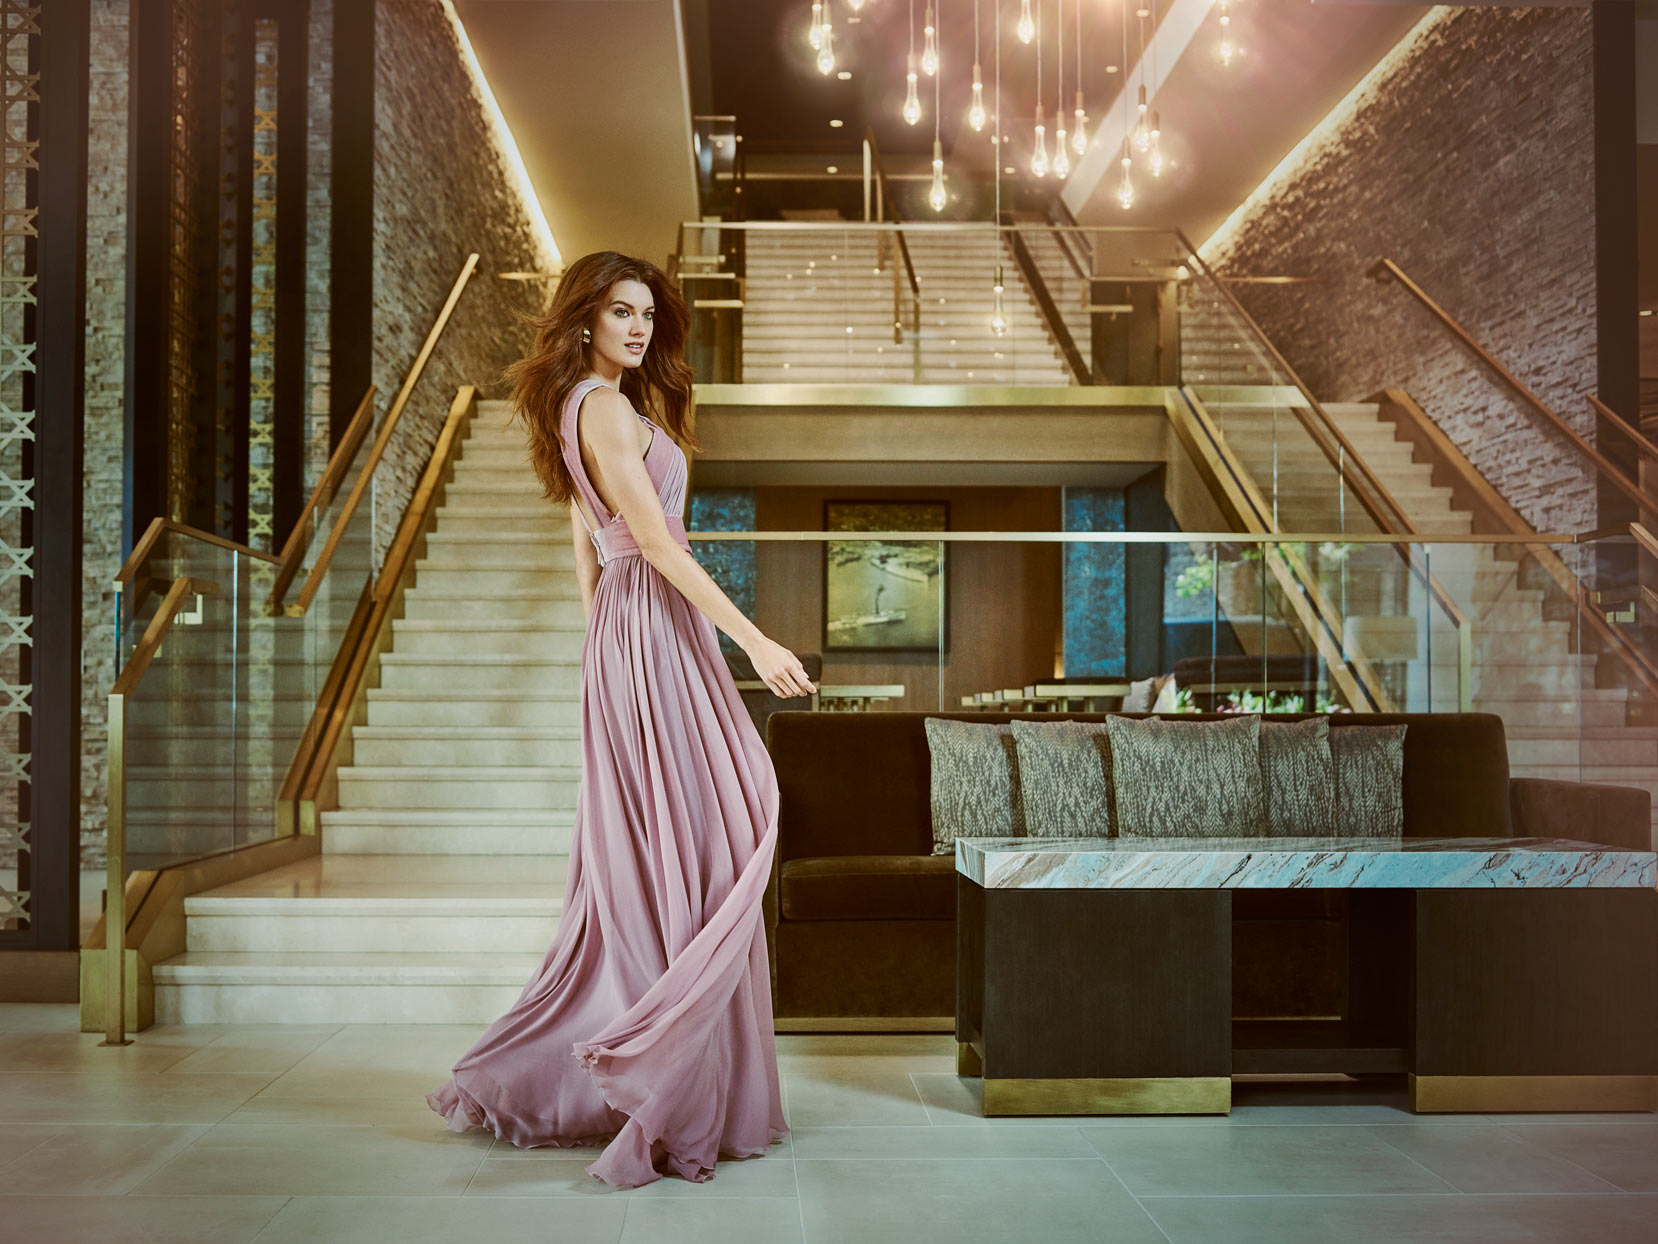 Mark DeLong - Commercial Photography - Woman walking by staircase in pink gown.